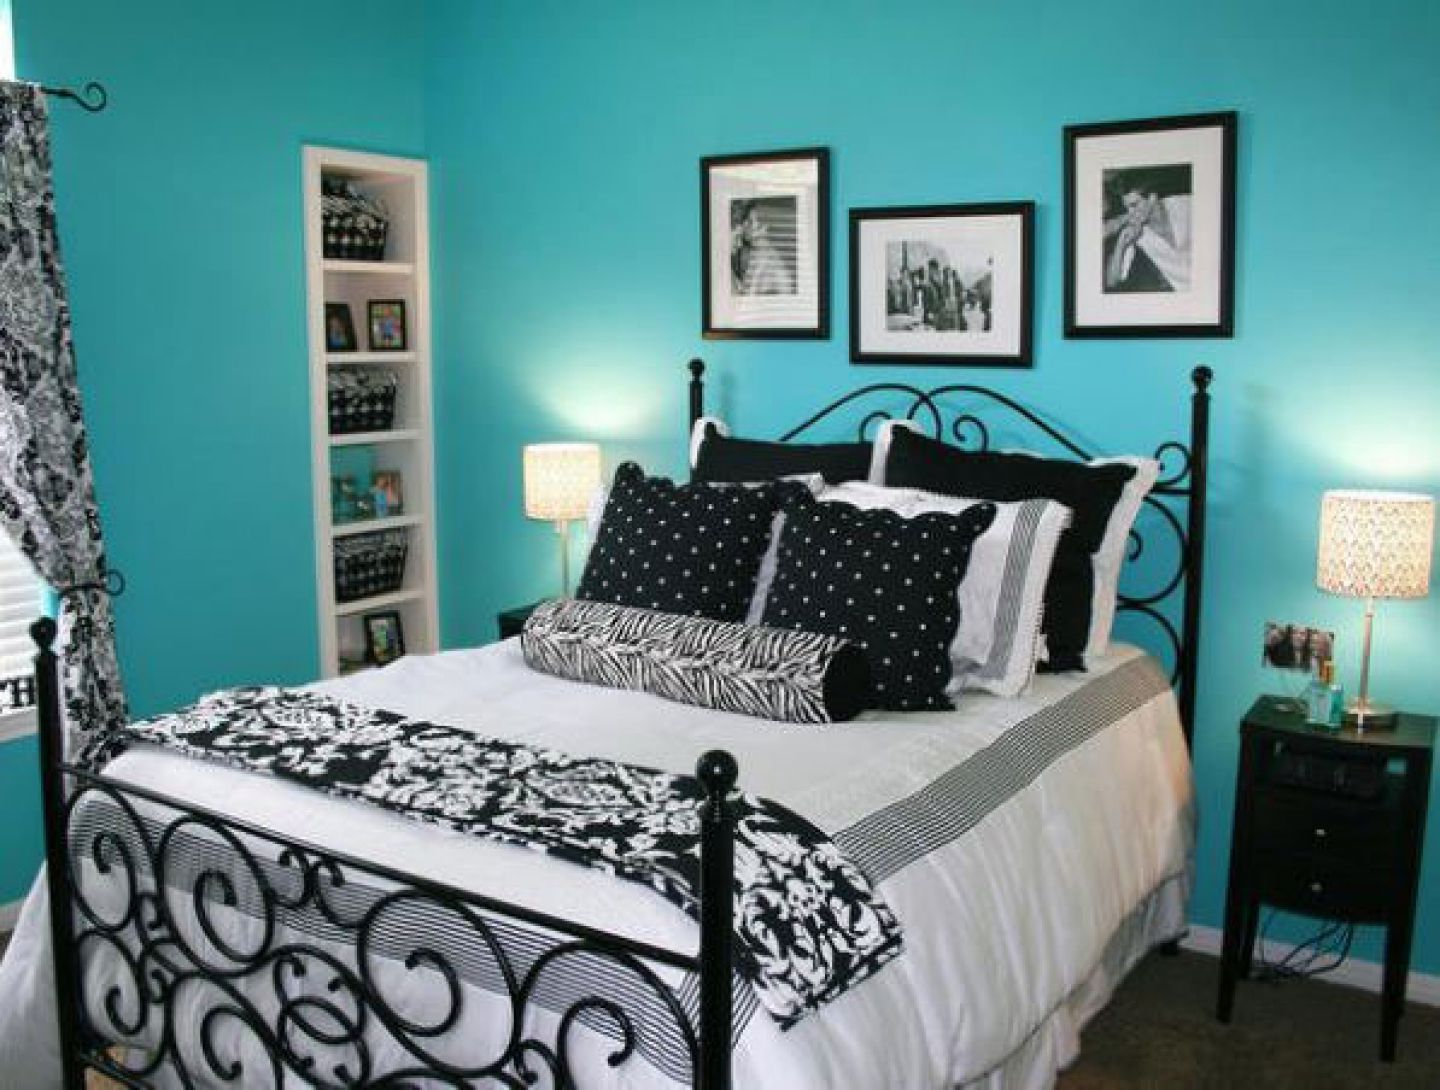 Blue bedroom decor for girls - Cool Blue Themes Design Room For Teenage Girls With Elegant Black Metal Bed Frame That Have